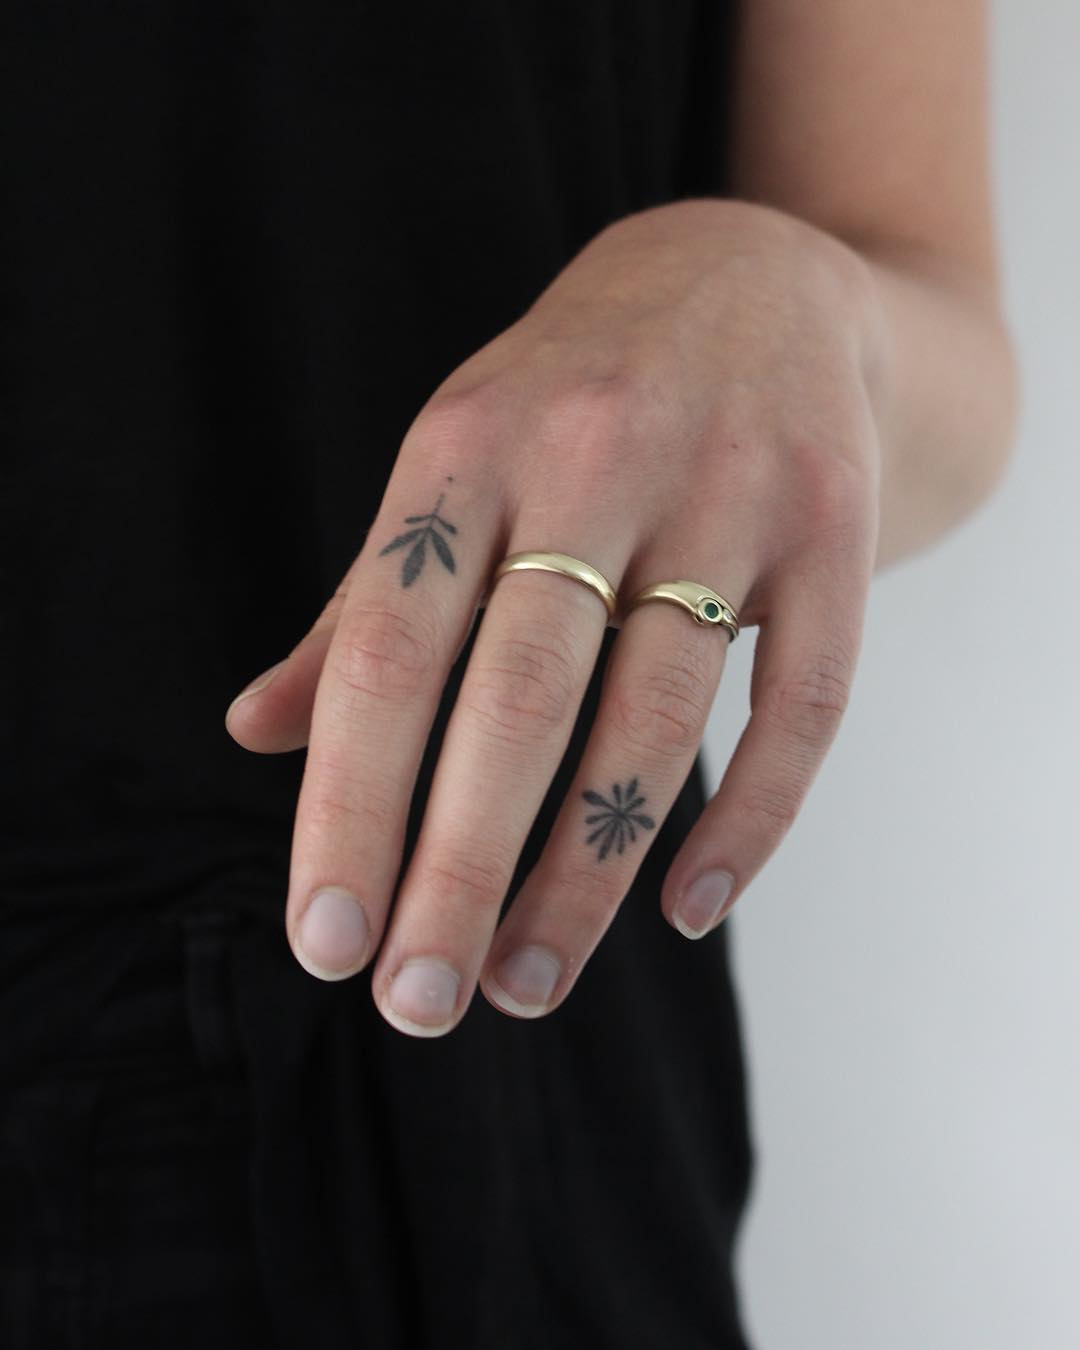 Hand-poked finger ornaments by Lara Maju